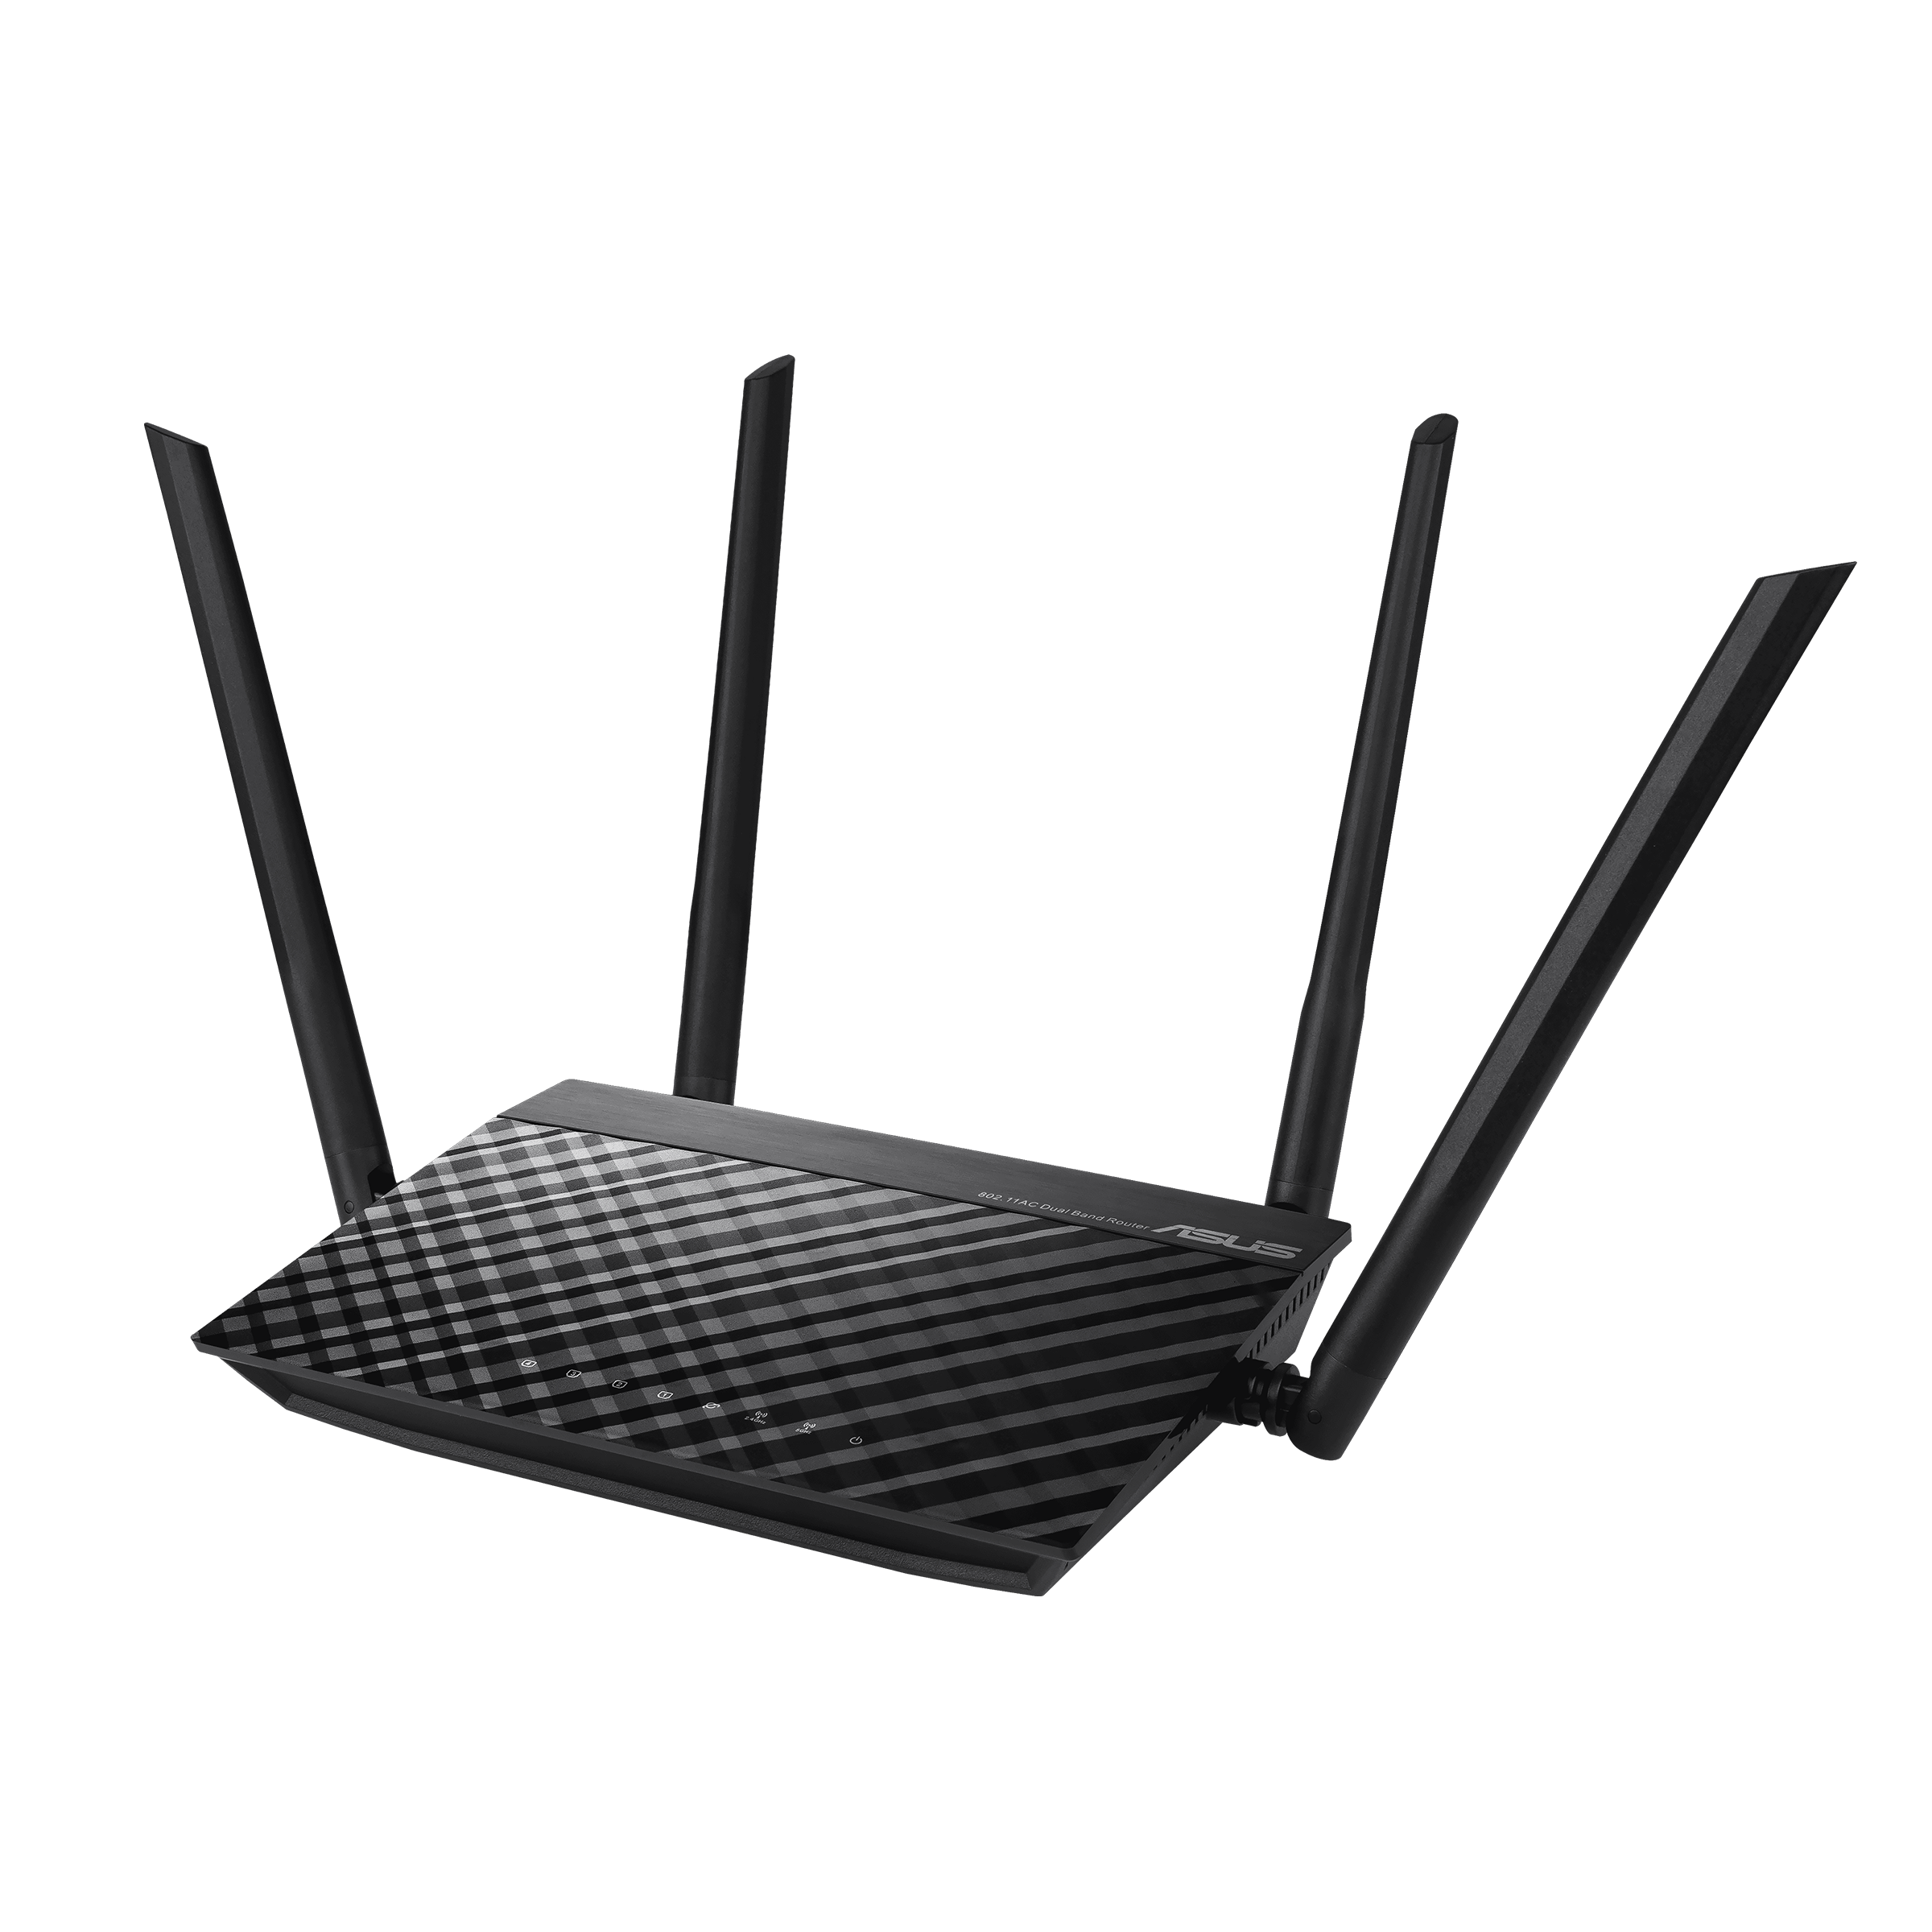 ASUS RT-AC1200 802.11ac Dual-Band Wireless-AC1200 Router